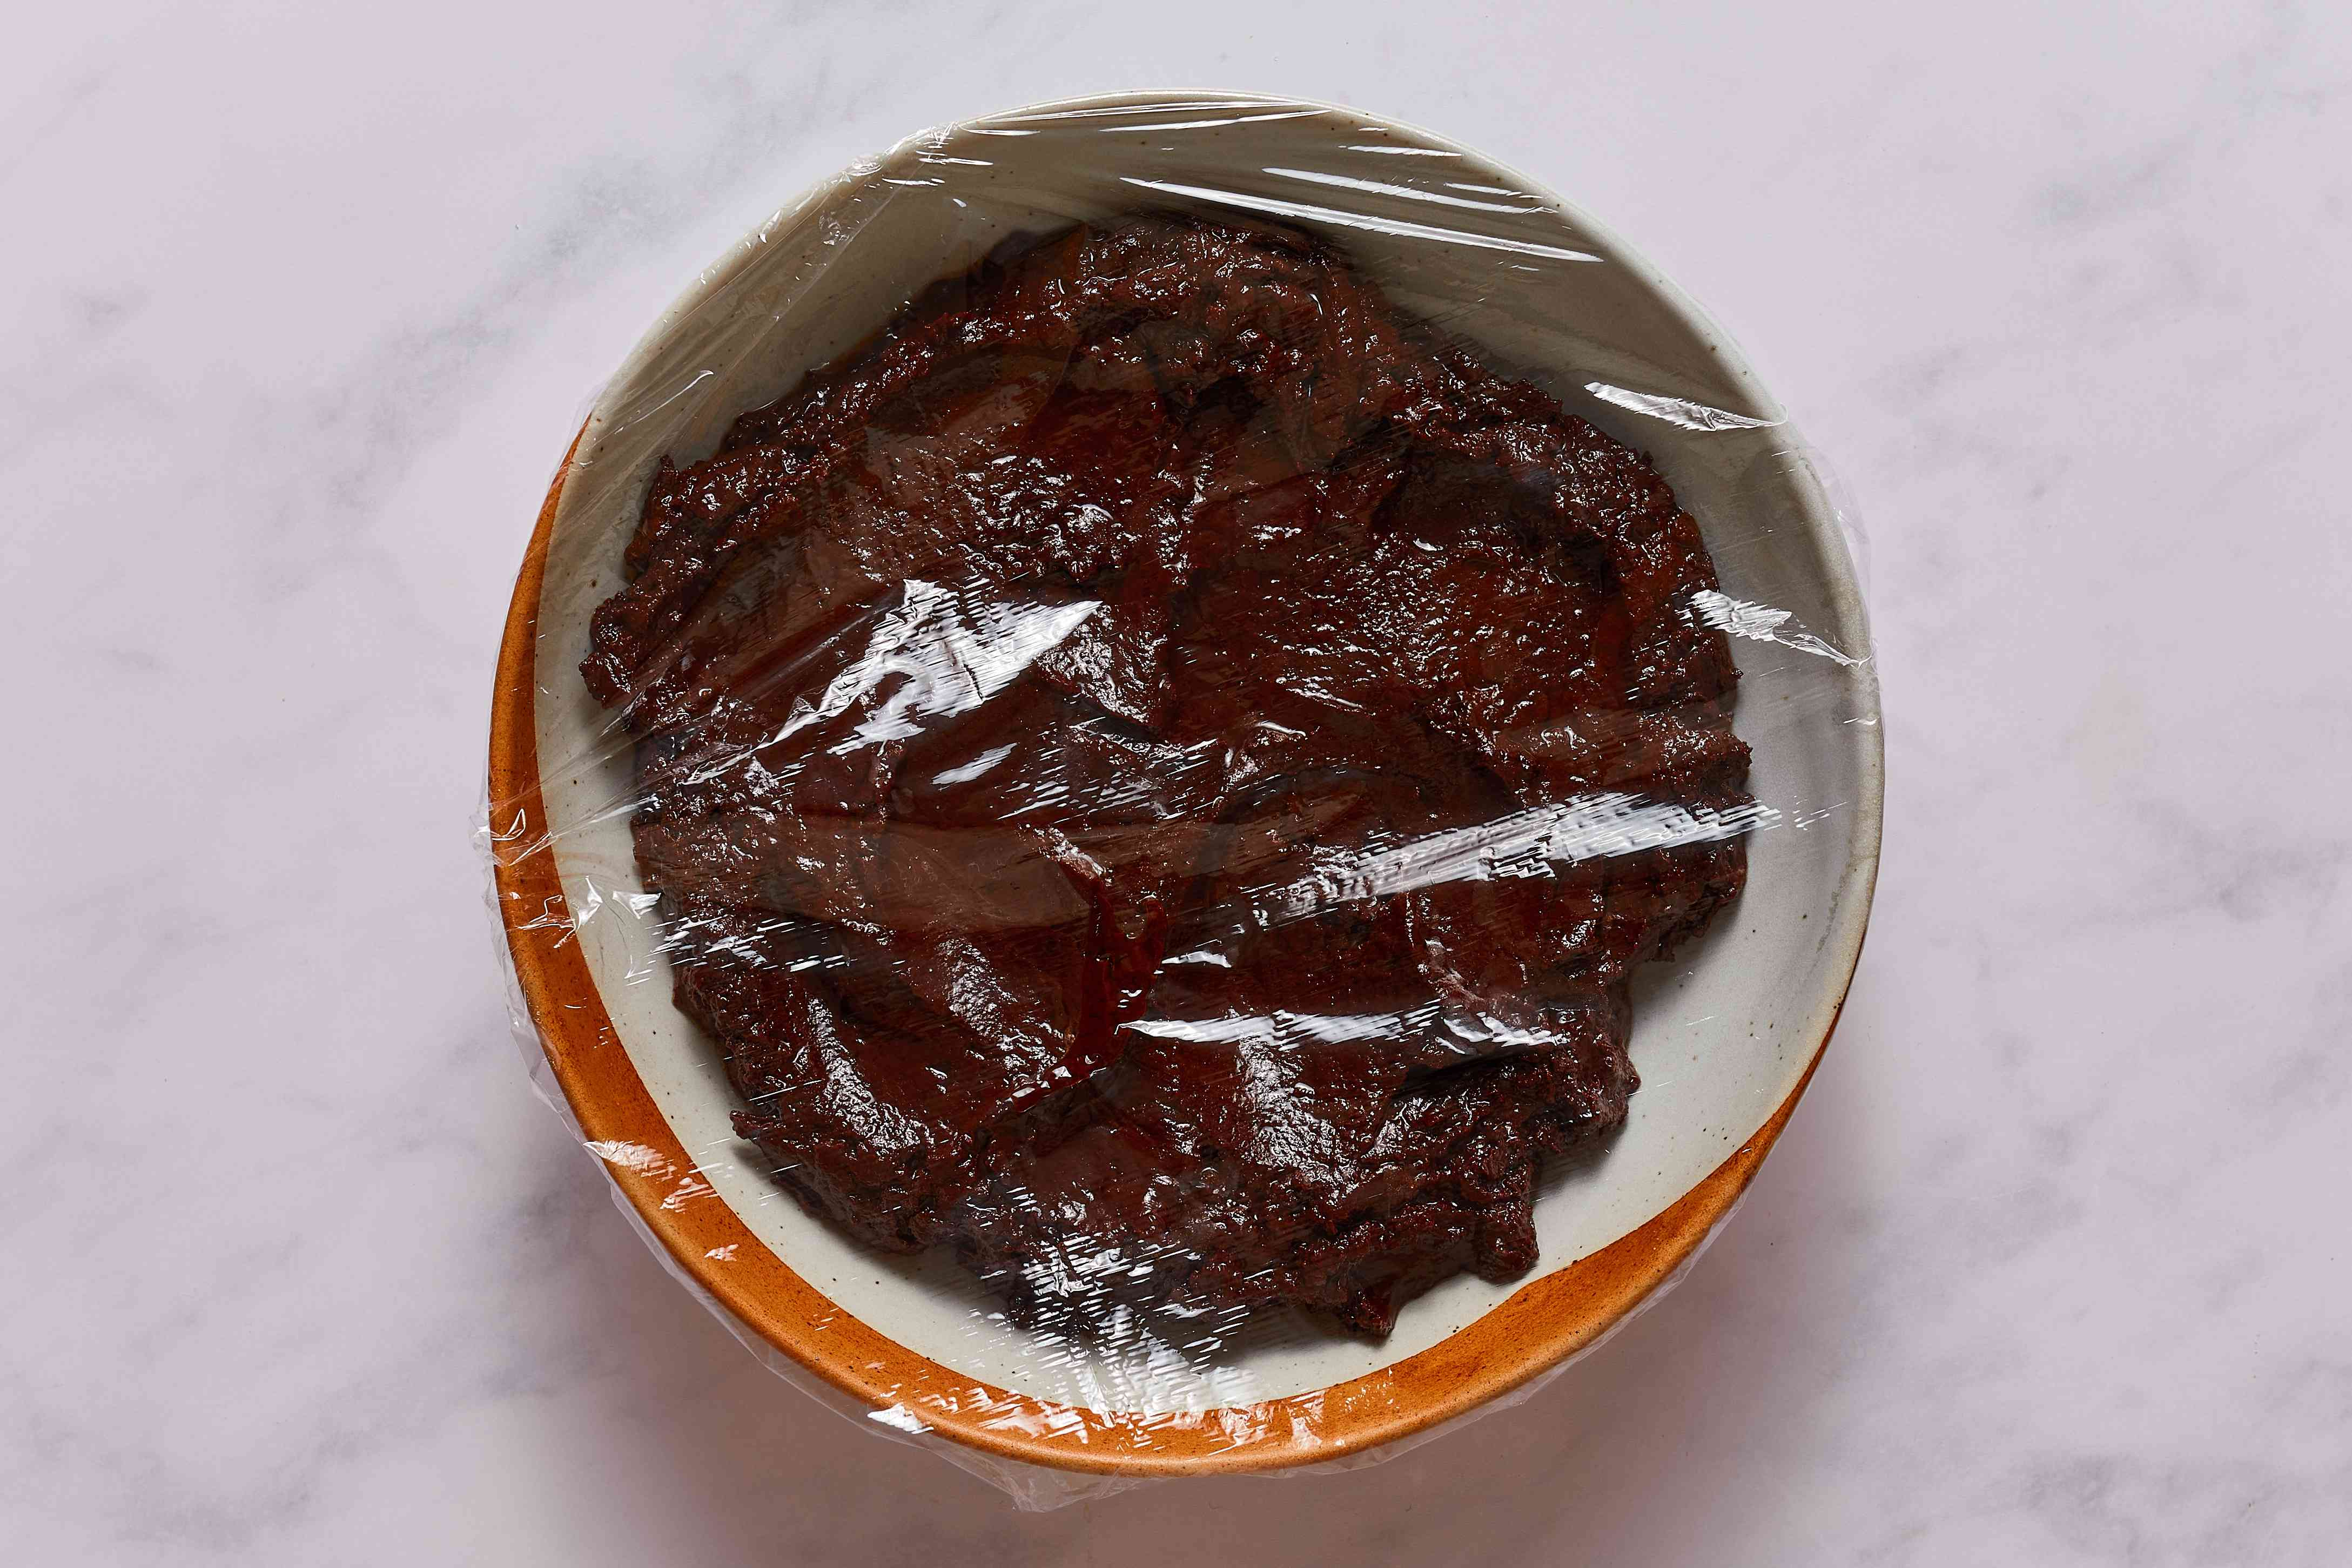 Pour the chocolate mixture into a medium bowl, and cover with plastic wrap